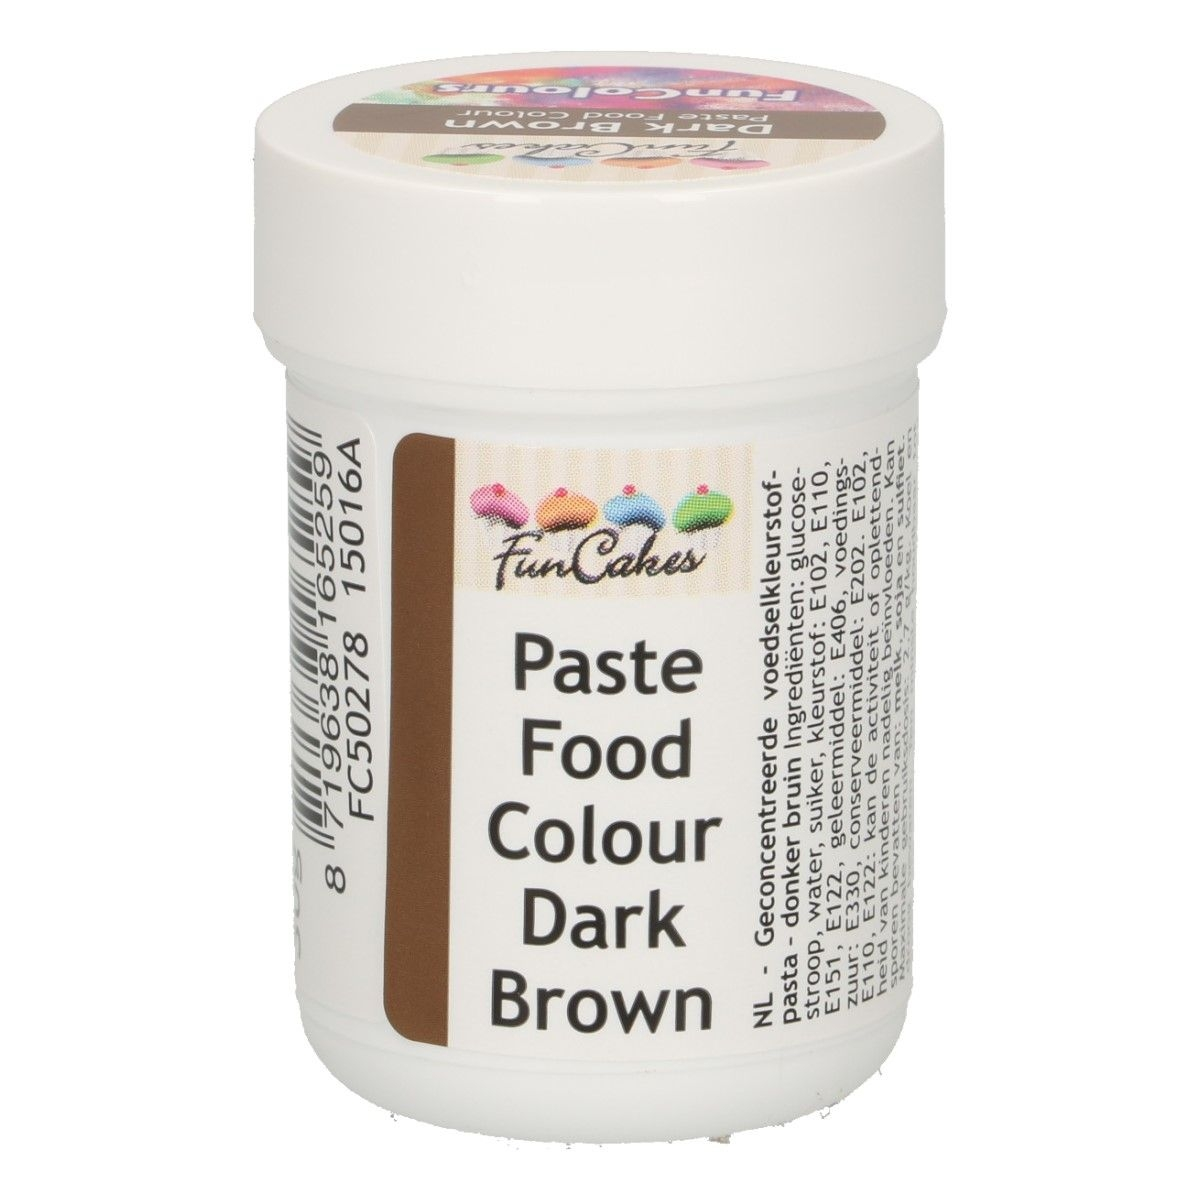 /f/u/funcakes-funcolours-paste-food-colour-dark-brown.jpg